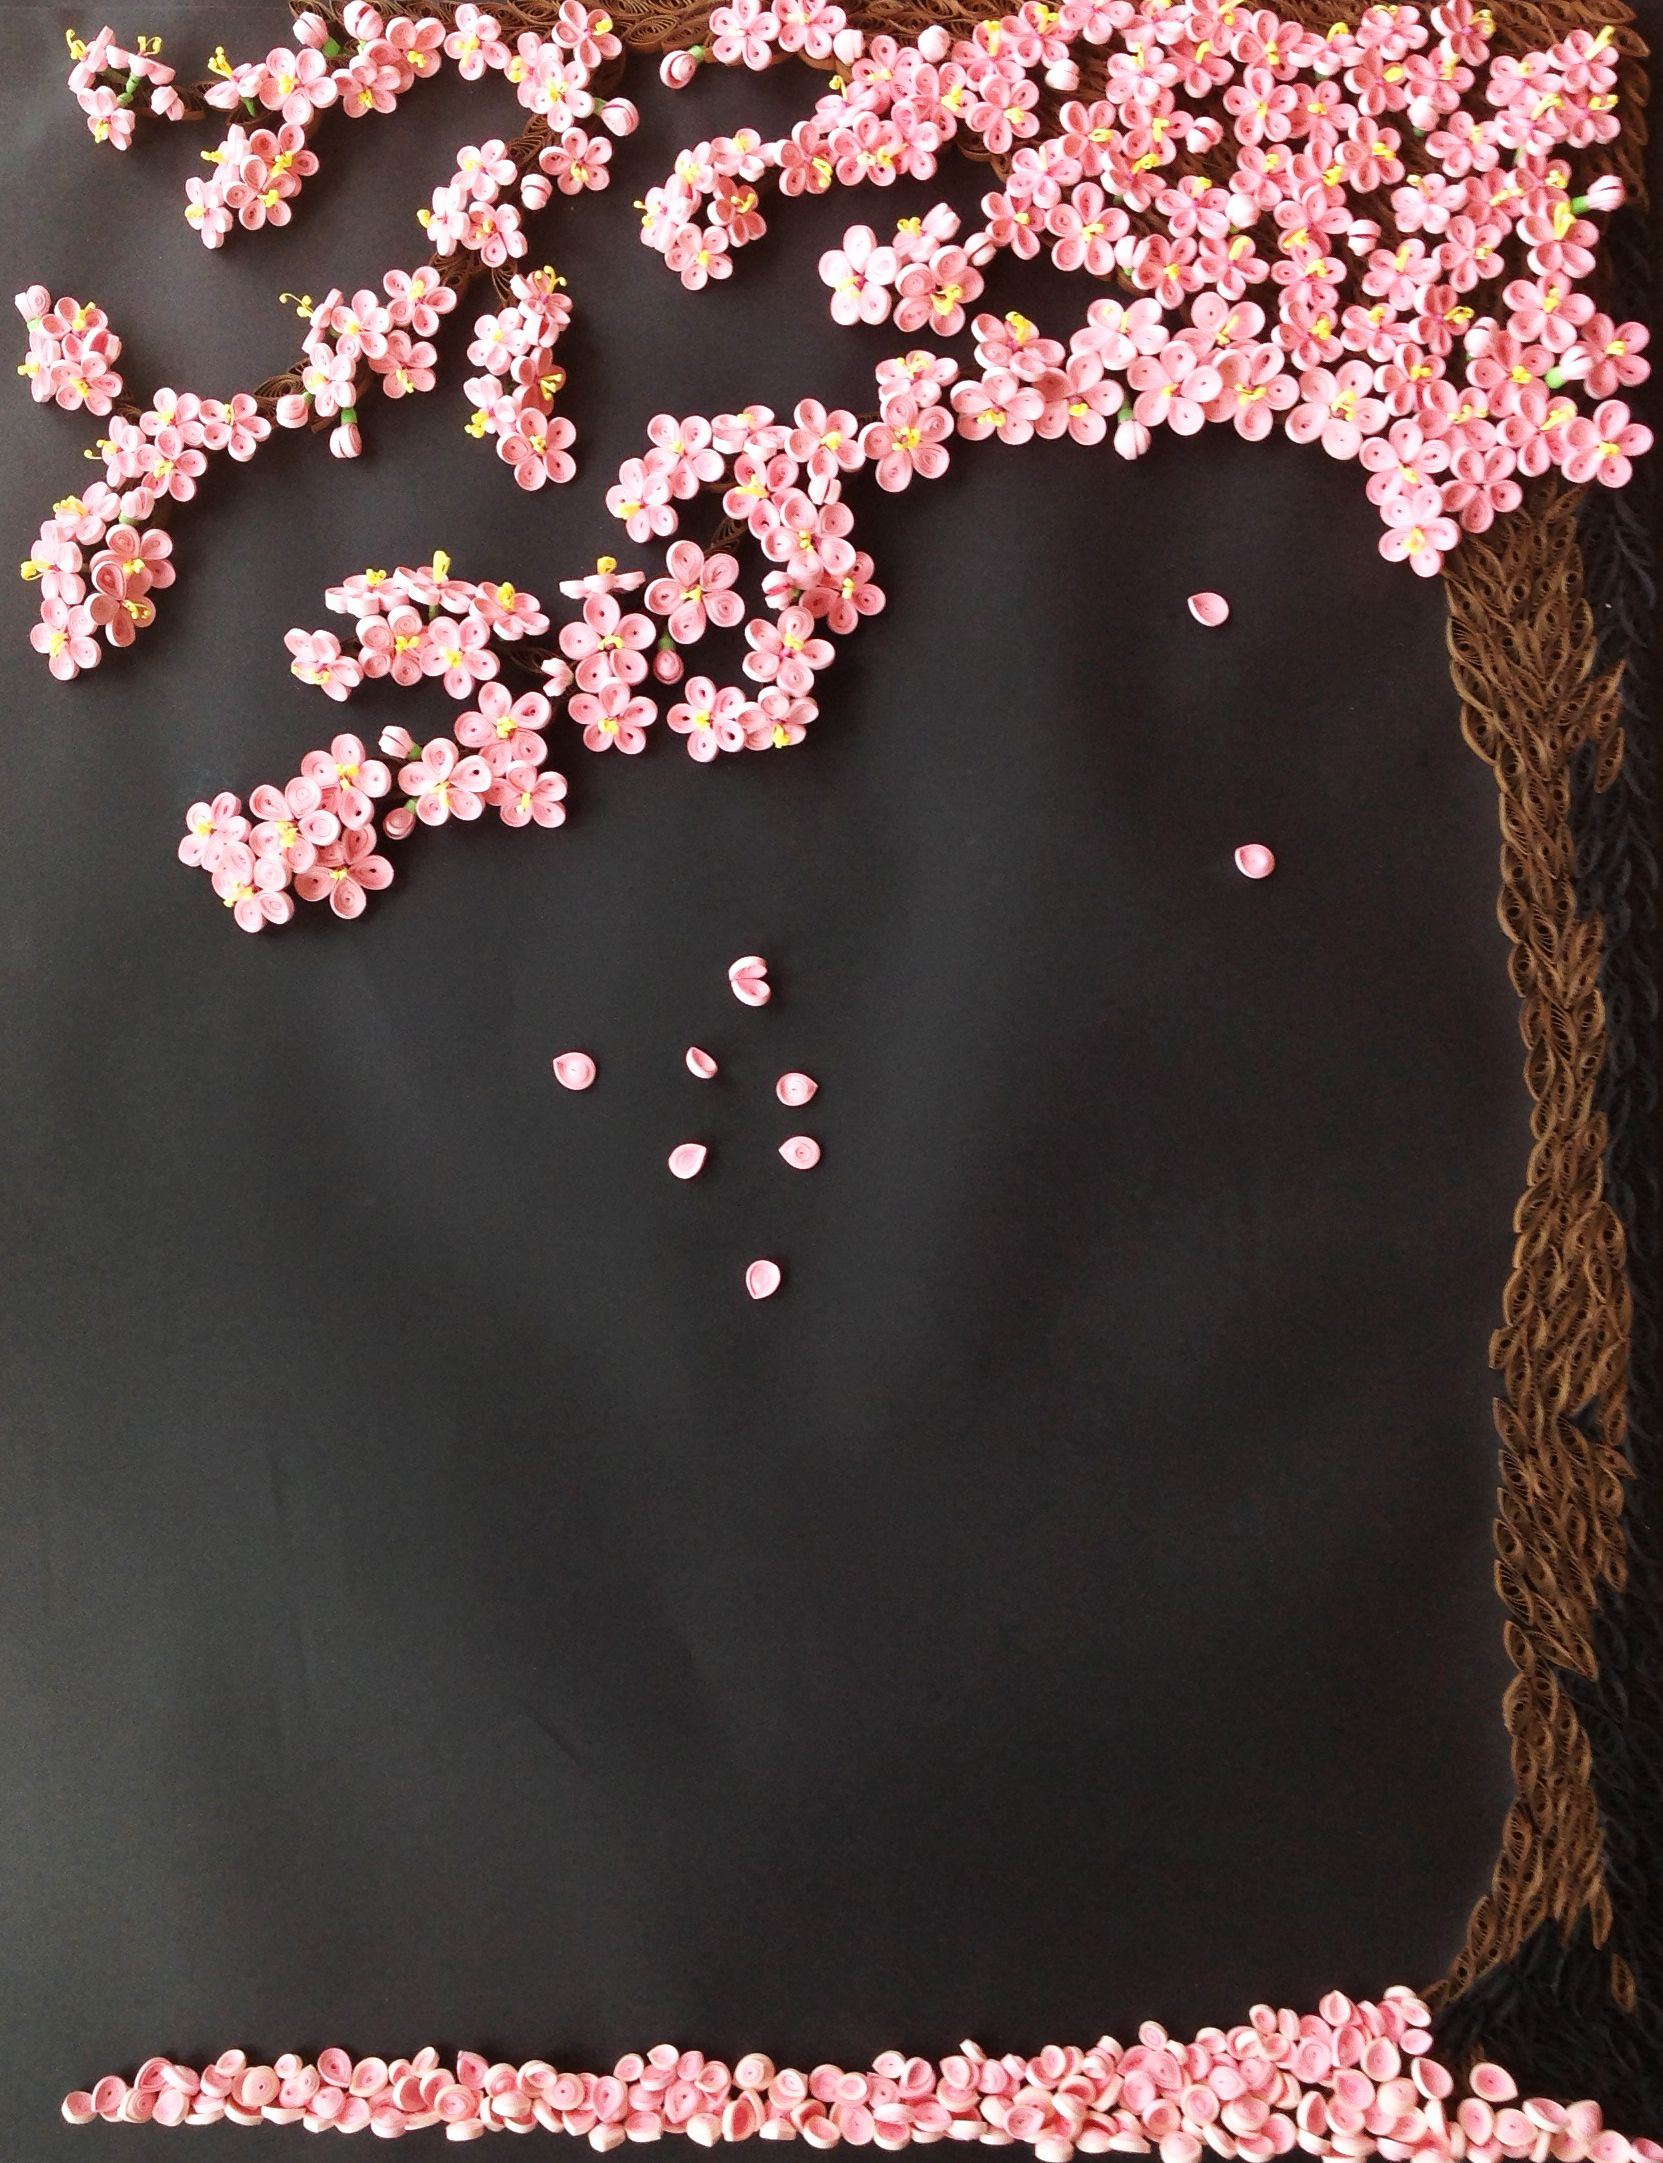 Sakura Tree More Than 1 000 Paper Petals 61 X 82 Cm By Yesterday S News Today S Accessor Paper Quilling Flowers Quilling Paper Craft Paper Quilling Designs